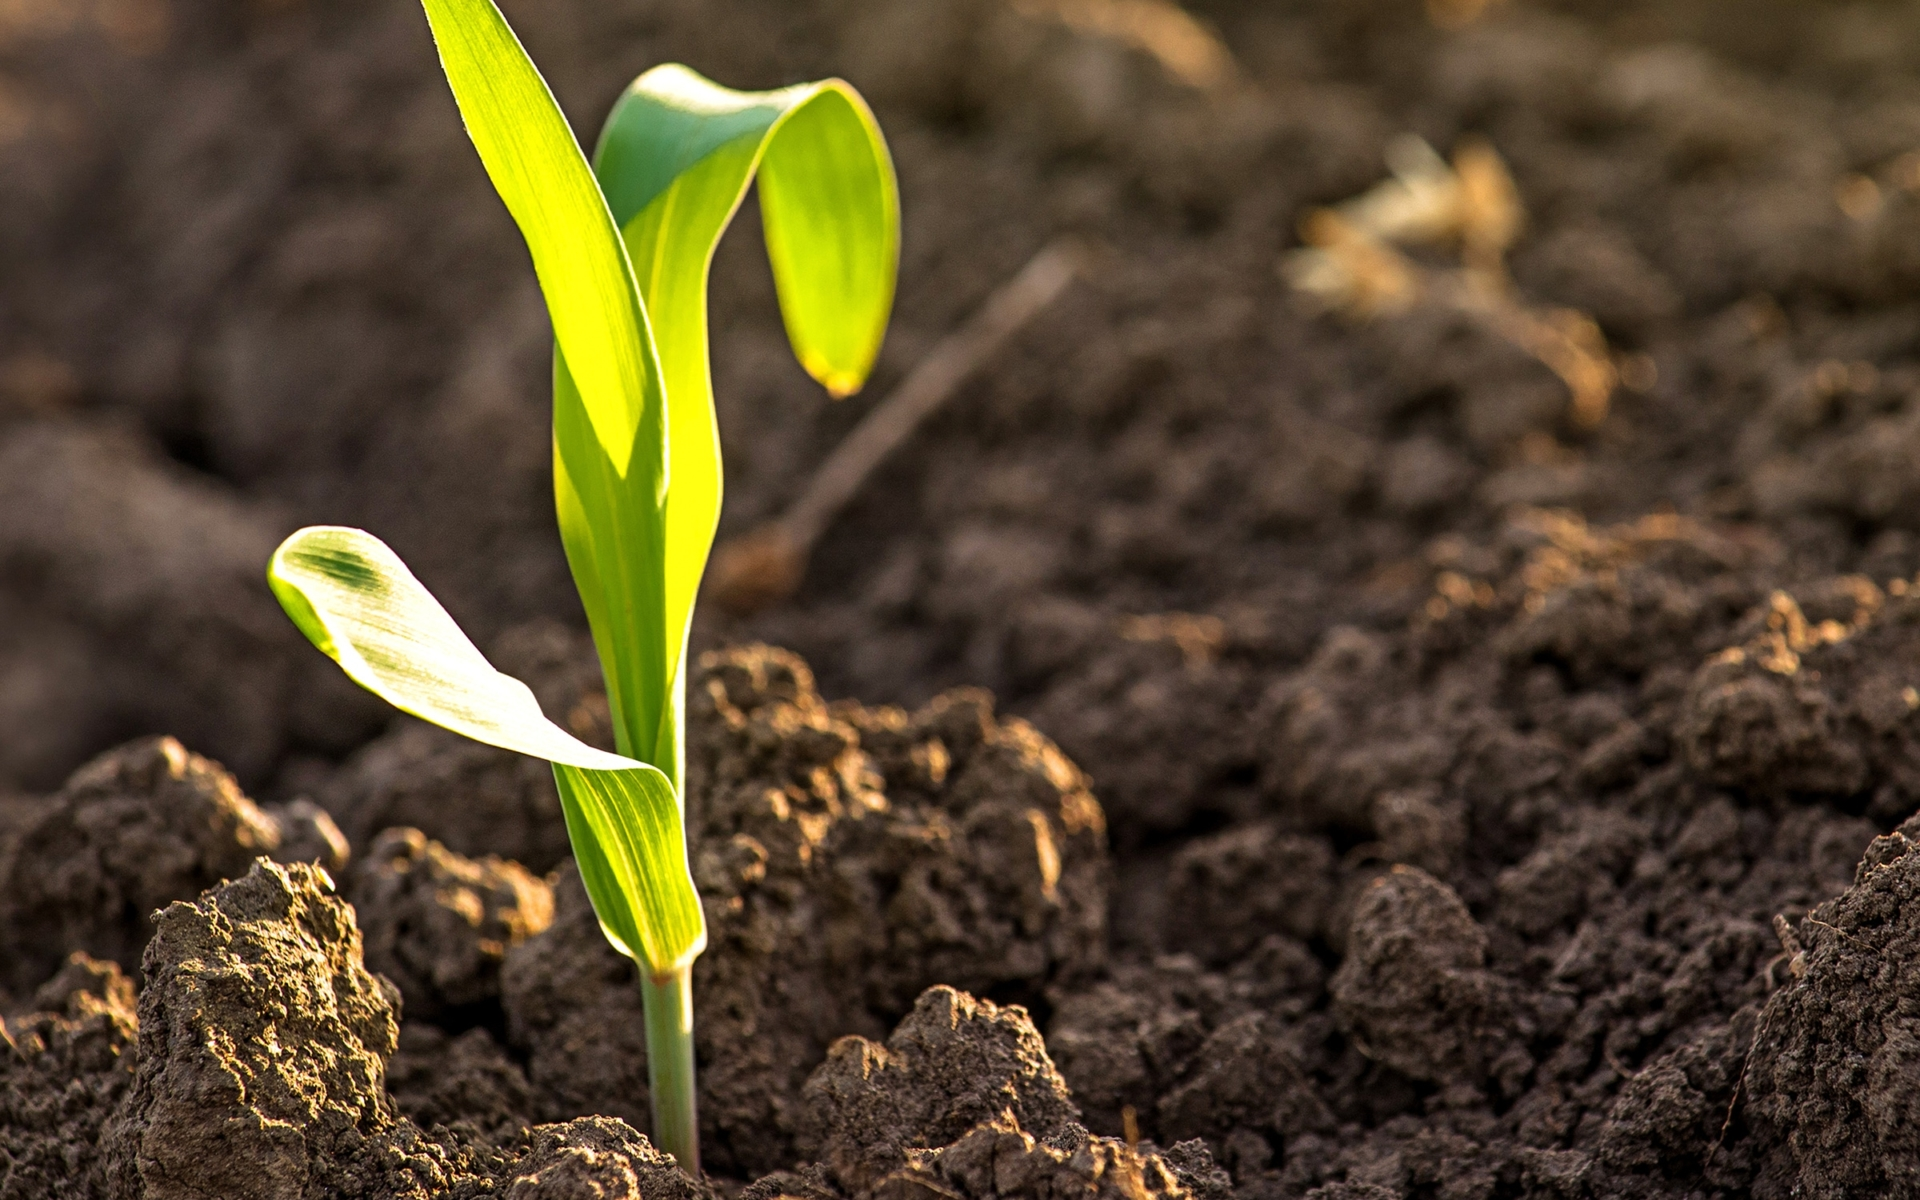 A young corn stalk seedling emerging from rich brown soil